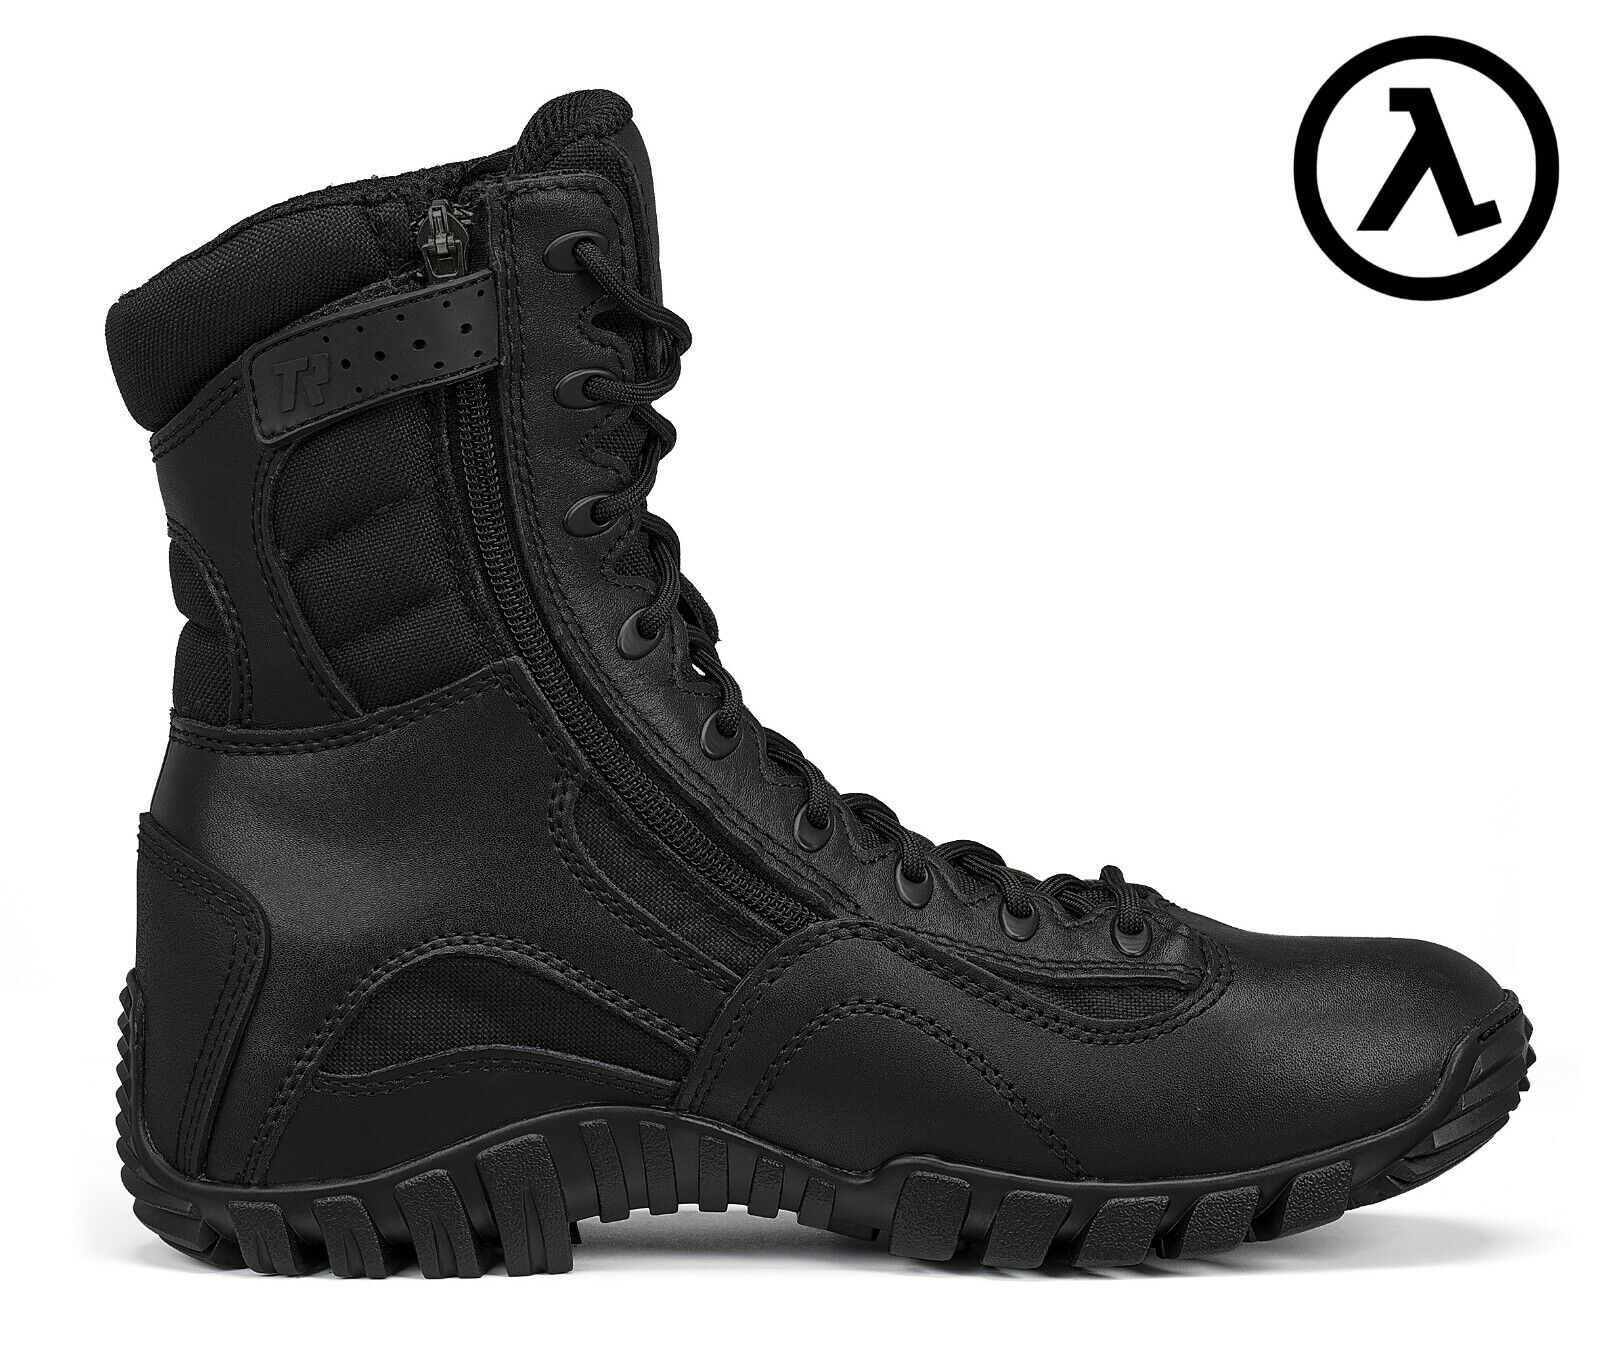 BELLEVILLE TR960Z KHYBER TR-SERIES SIDE-ZIP HYBRID TACTICAL BOOTS - ALL SIZES